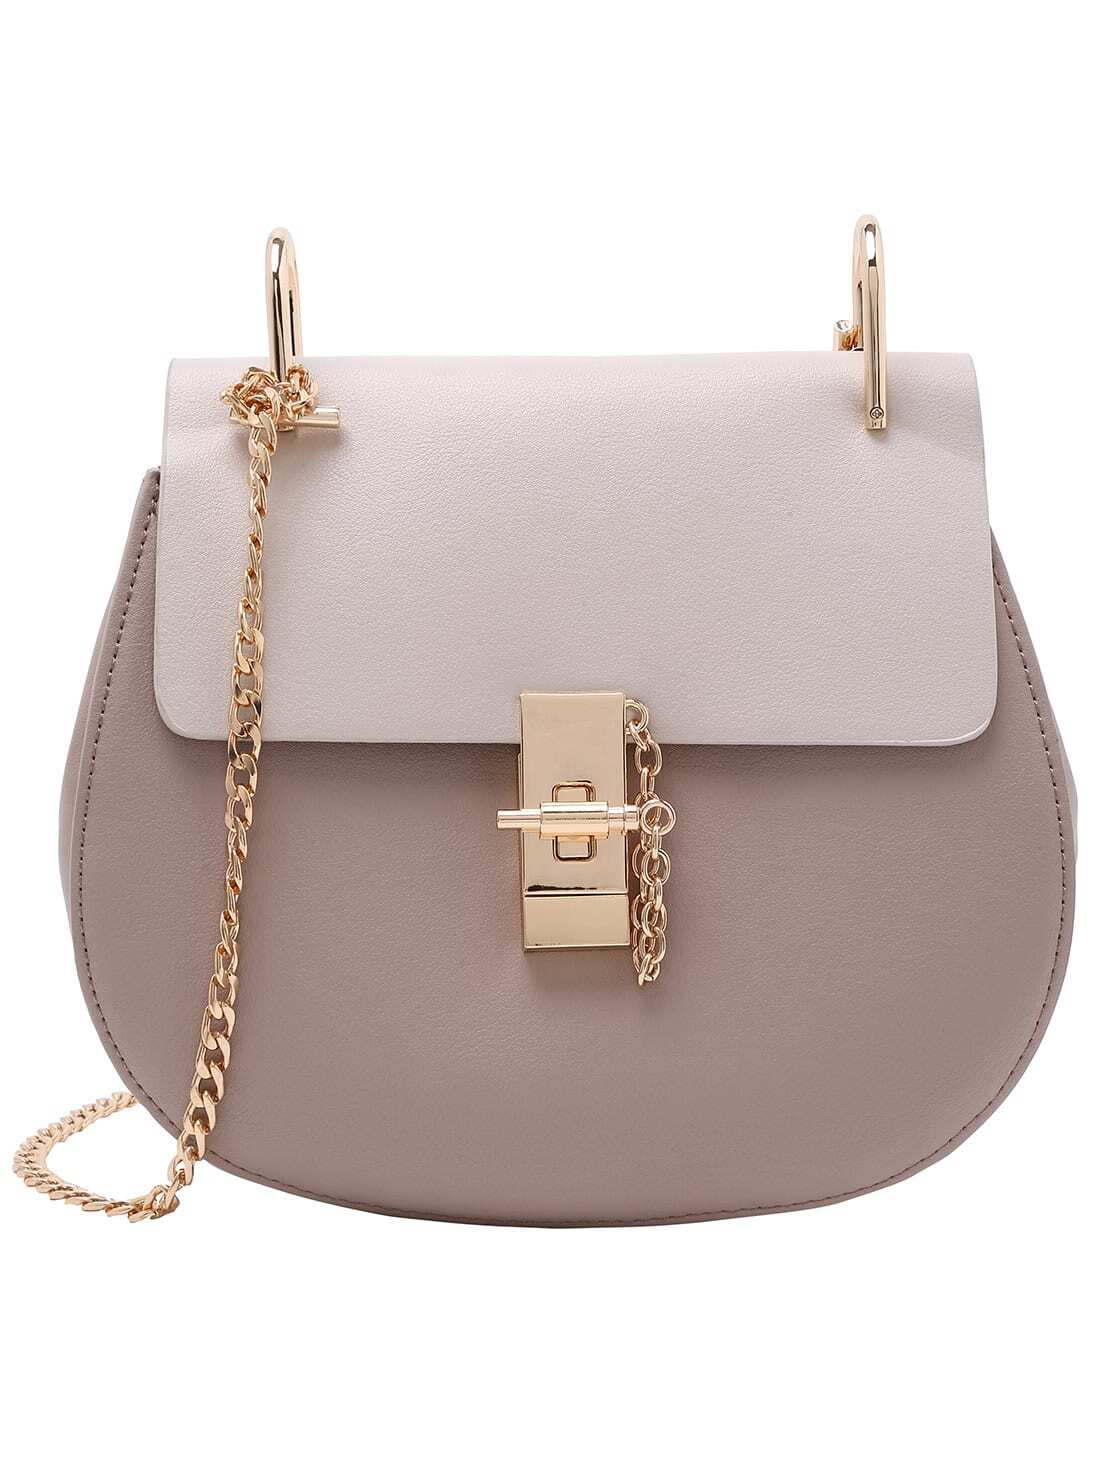 Contrast Faux Leather Chain Saddle Bag – Grey